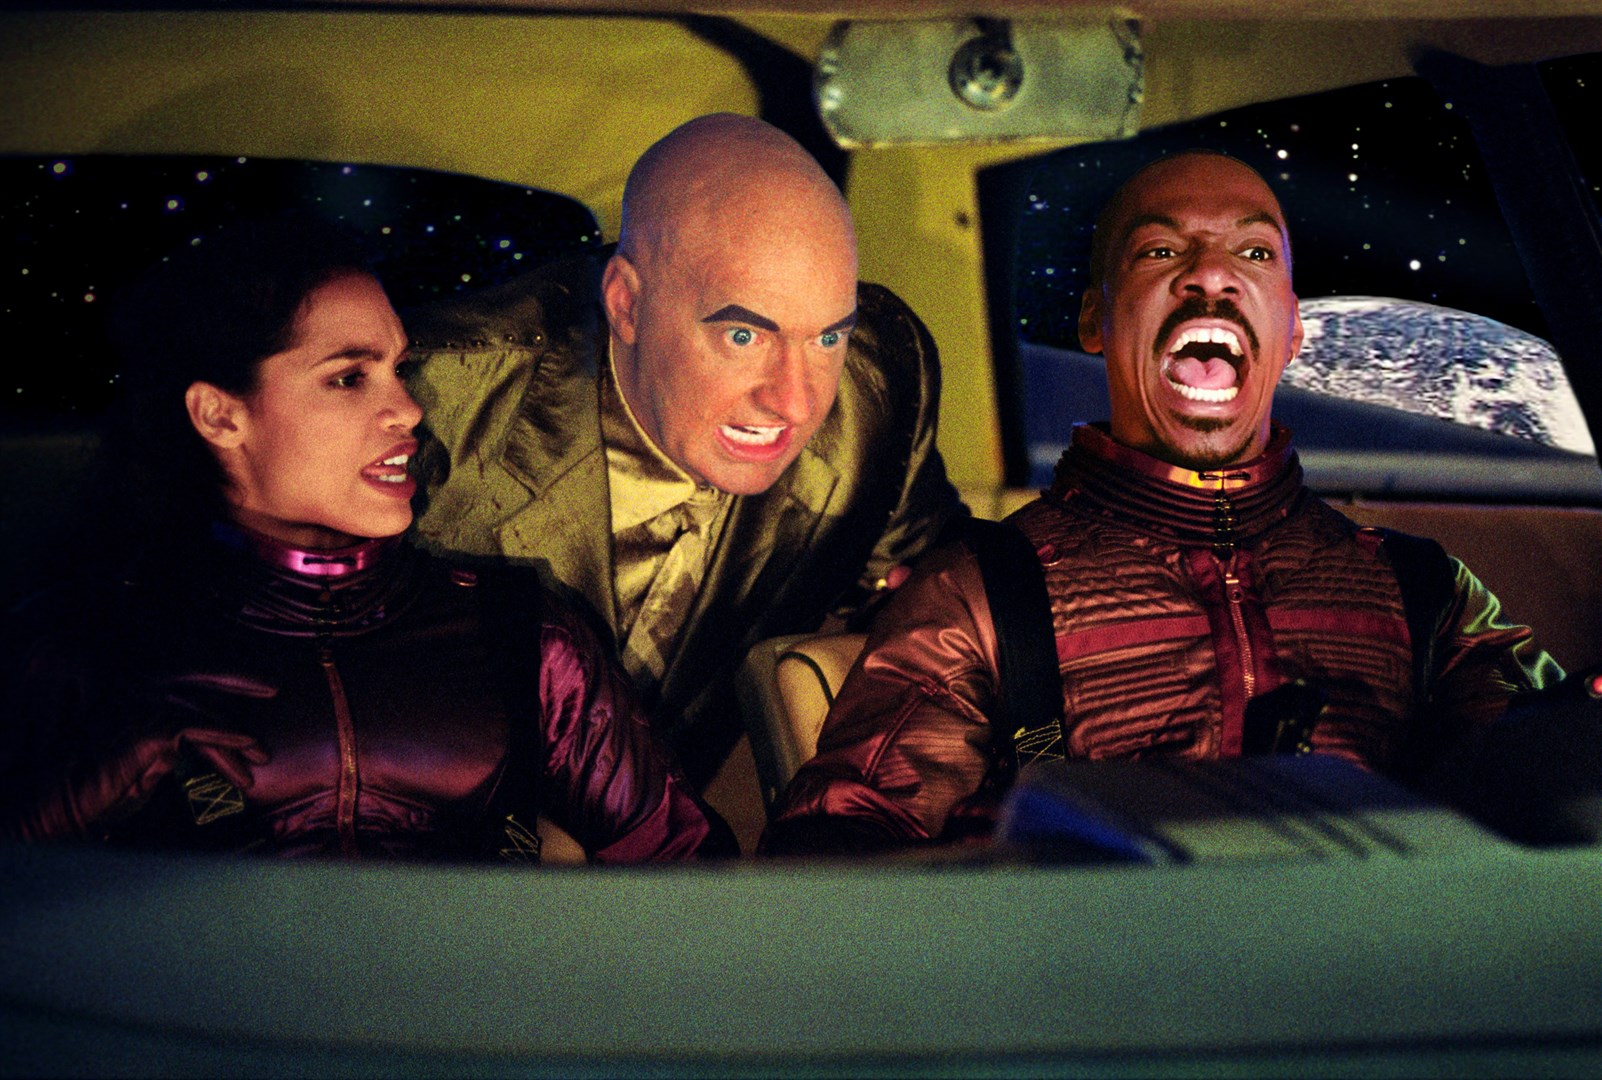 (l to r) Rosario Dawson, android Randy Quaid and Eddie Murphy on a Lunar journey in The Adventures of Pluto Nash (2002)